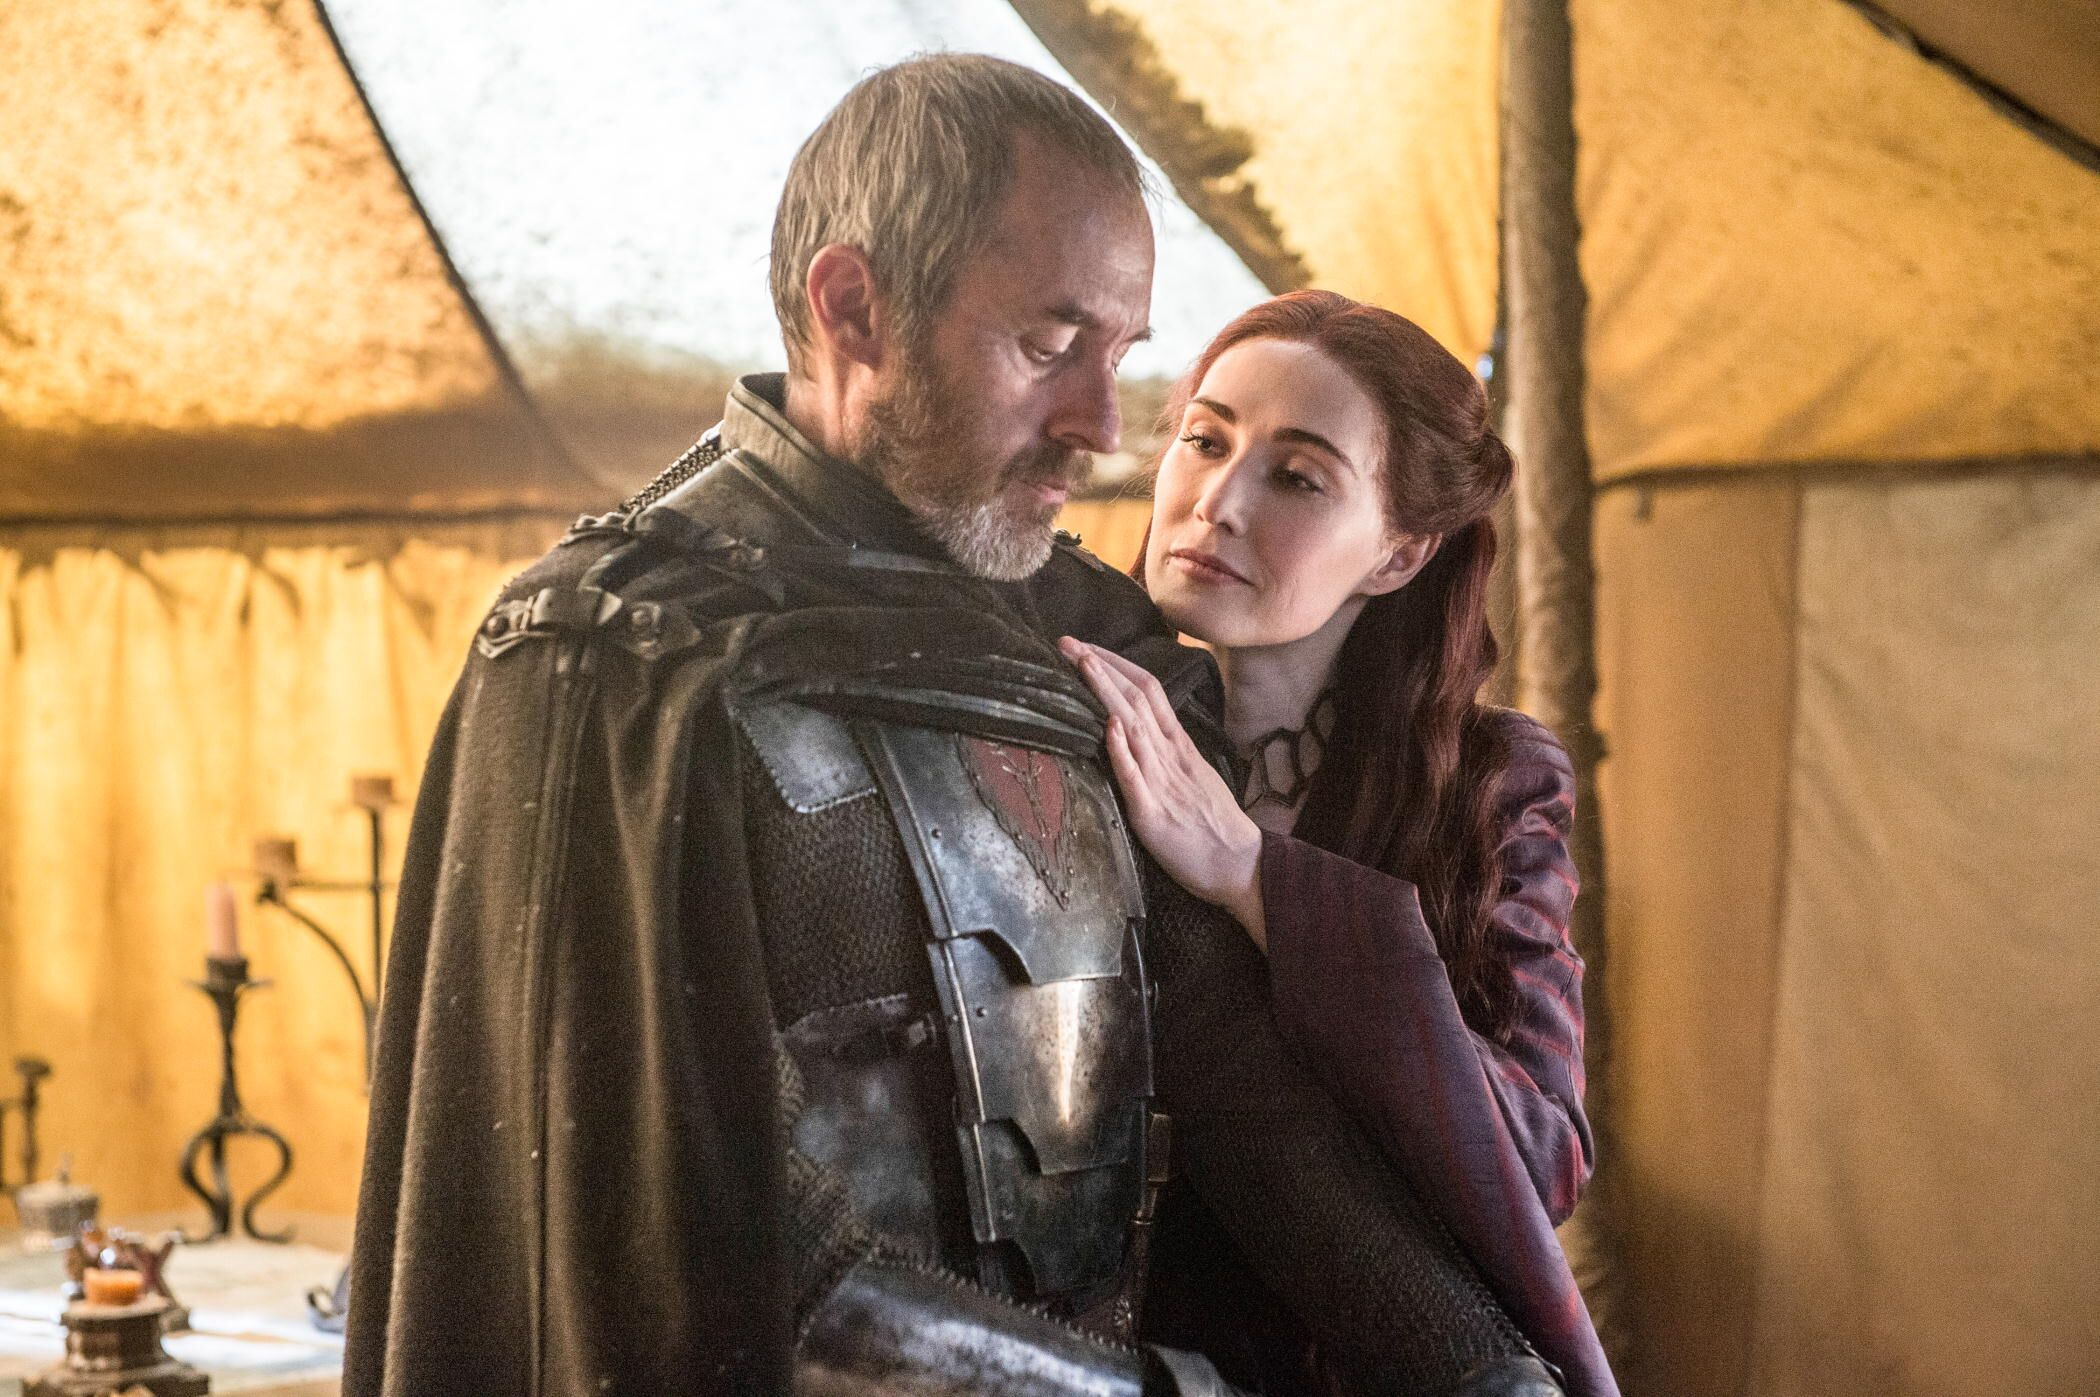 Video: Stannis Baratheon: 'The One True King' documentary - Winter is Coming